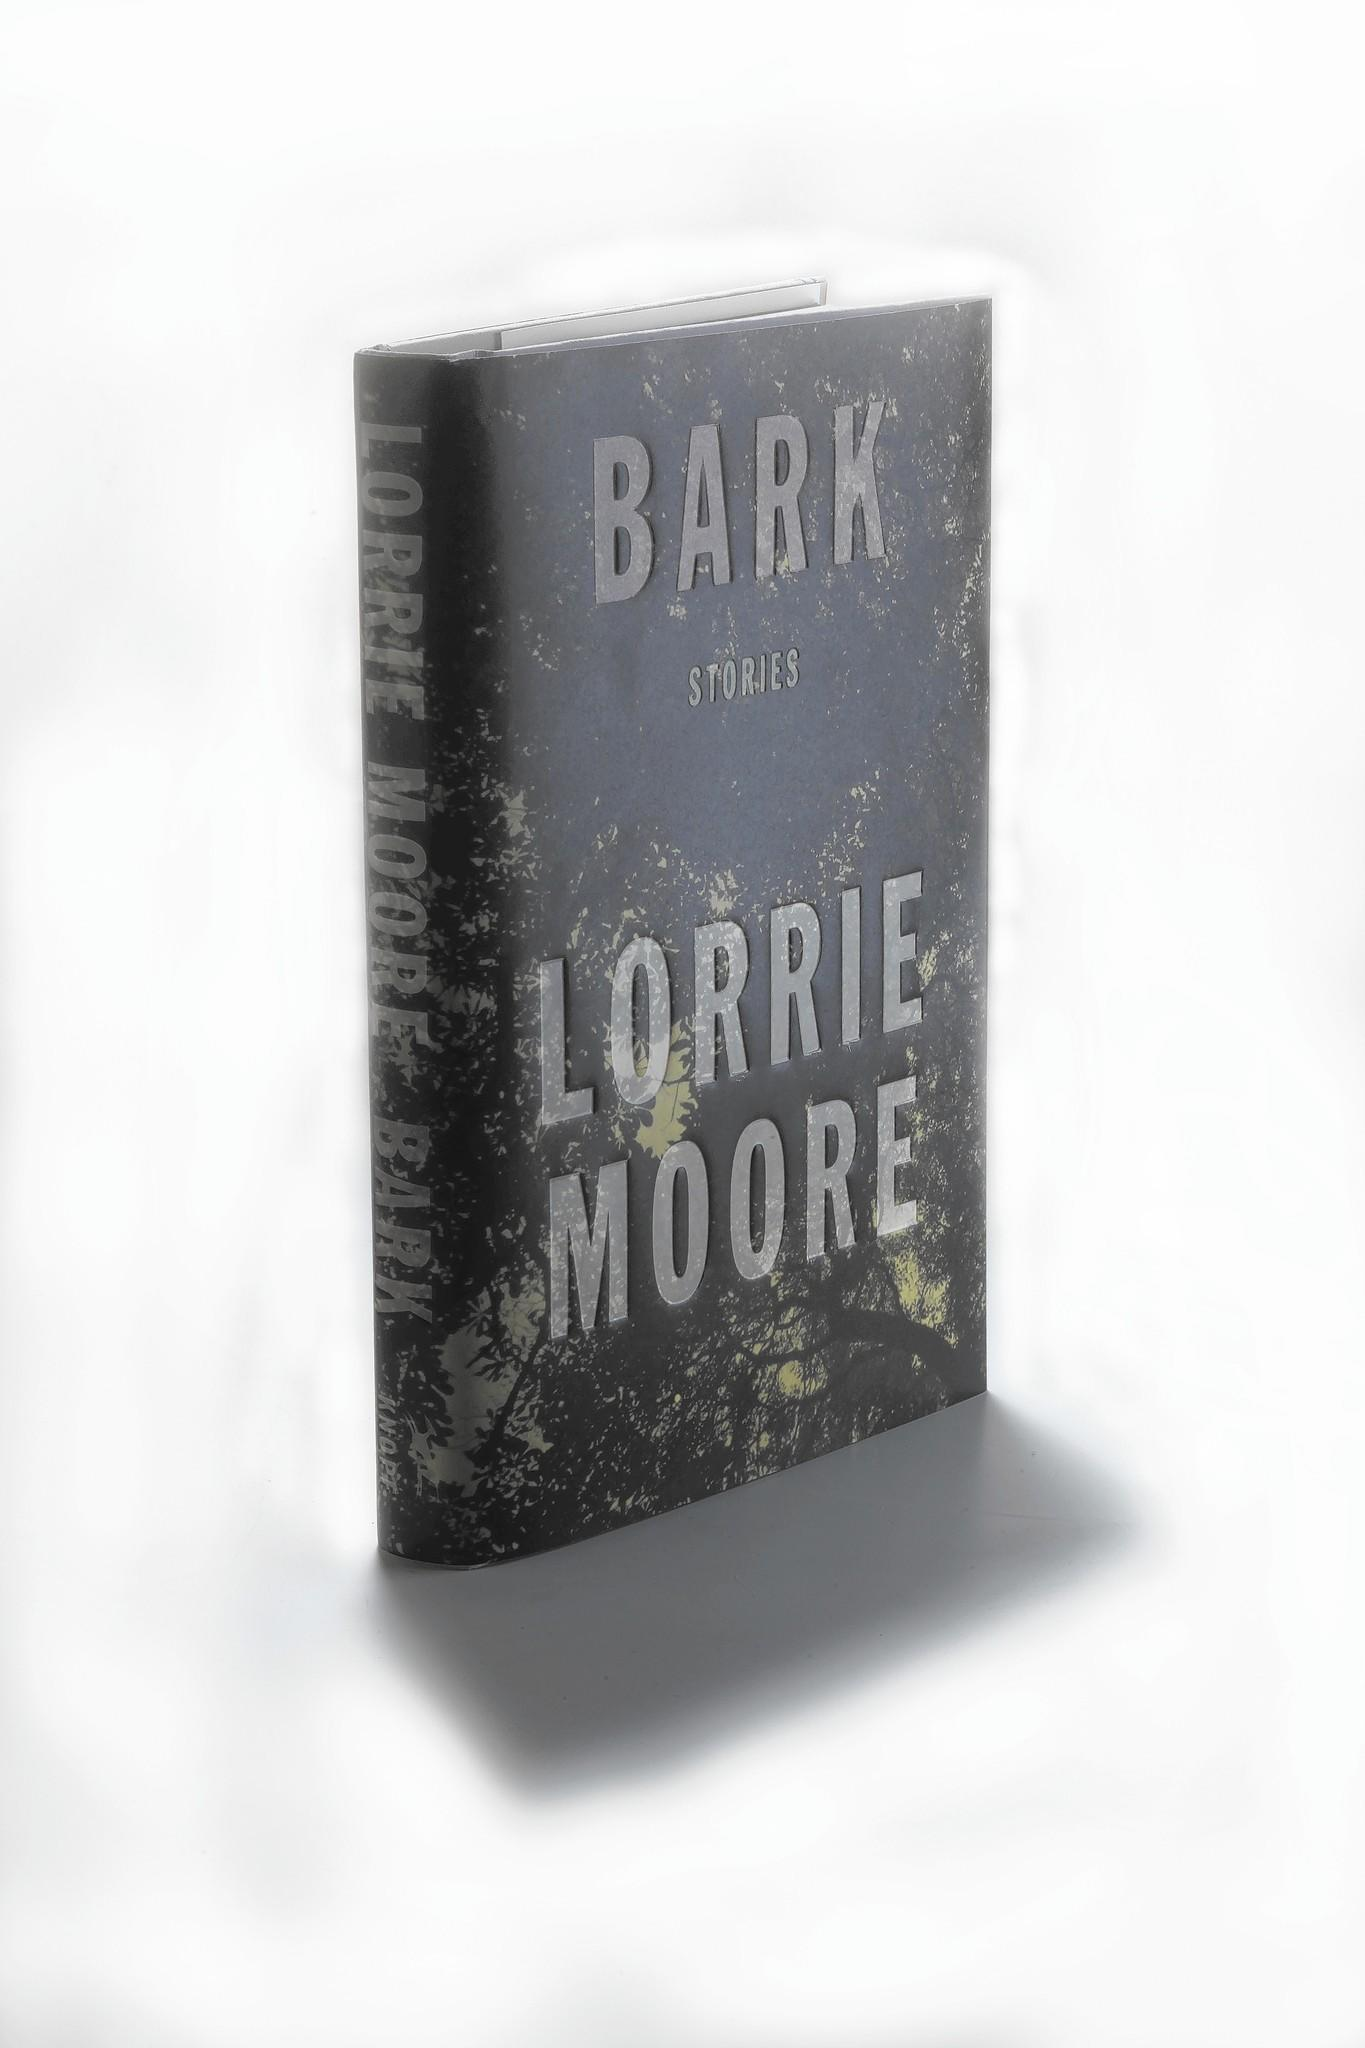 """""""Bark,"""" by Lorrie Moore, is a collection of short stories involving relationships between couples and relationships between parents and children."""